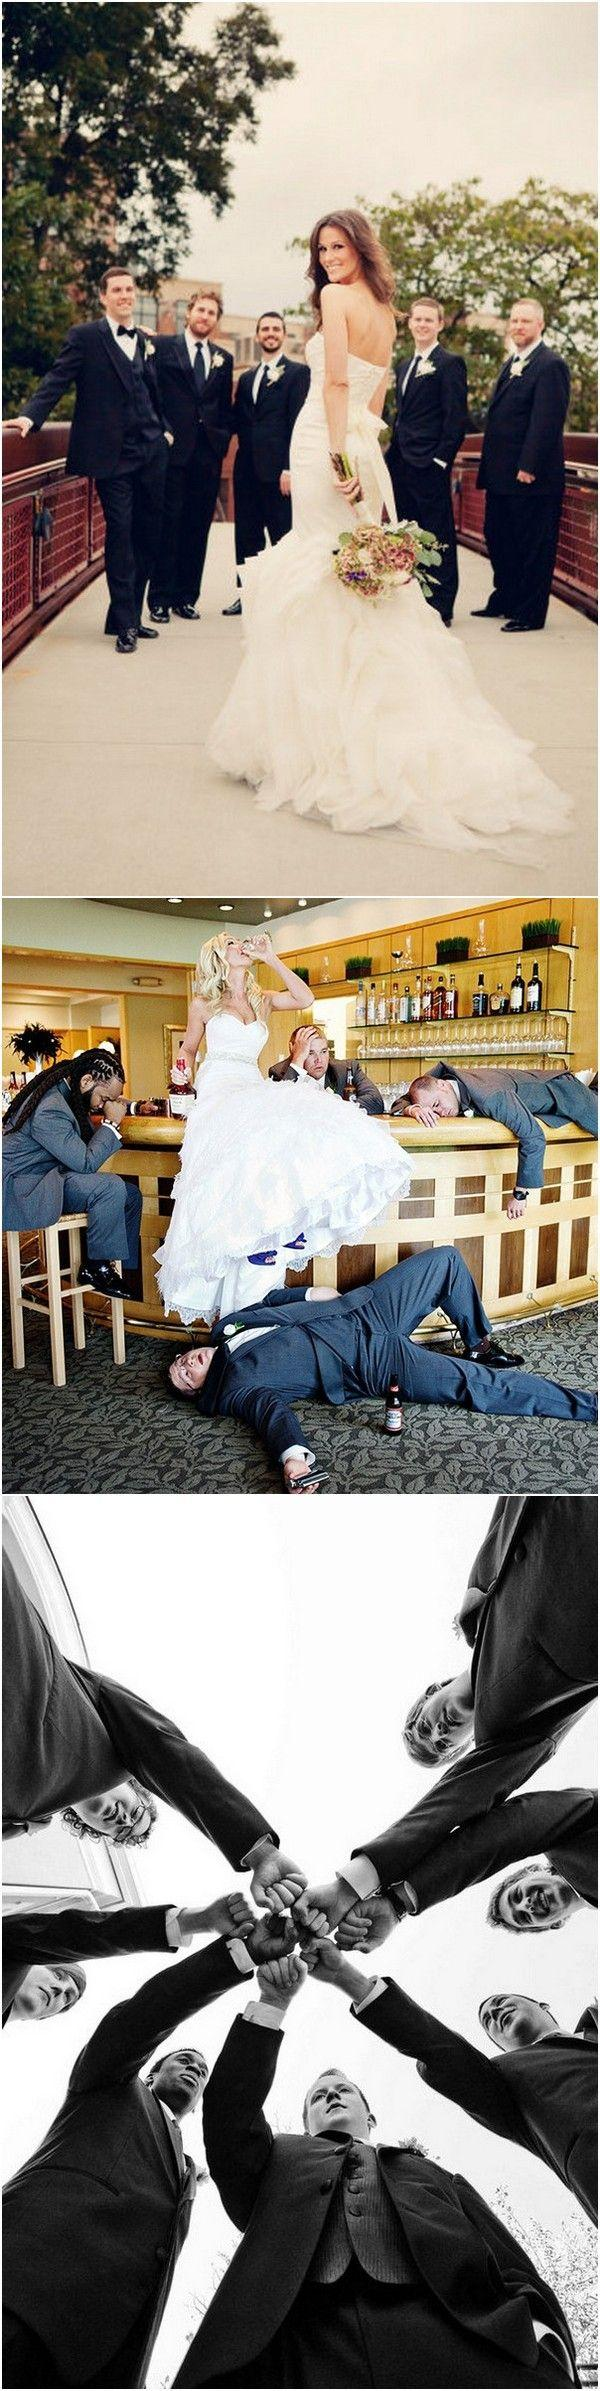 Wedding - 18 Awesome Wedding Photos With Groomsmen That You Can't Miss - Page 2 Of 3